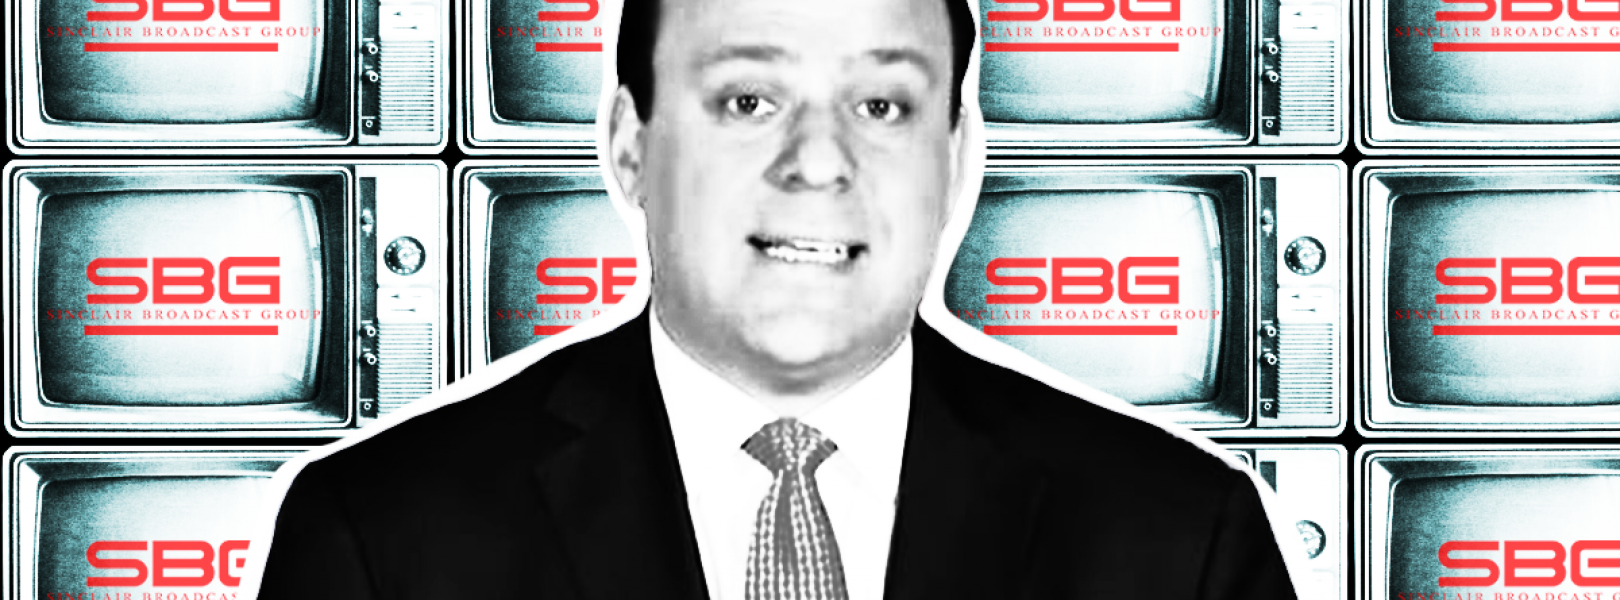 stylized image of Boris Epshteyn in front of the Sinclair Broadcast Group logo